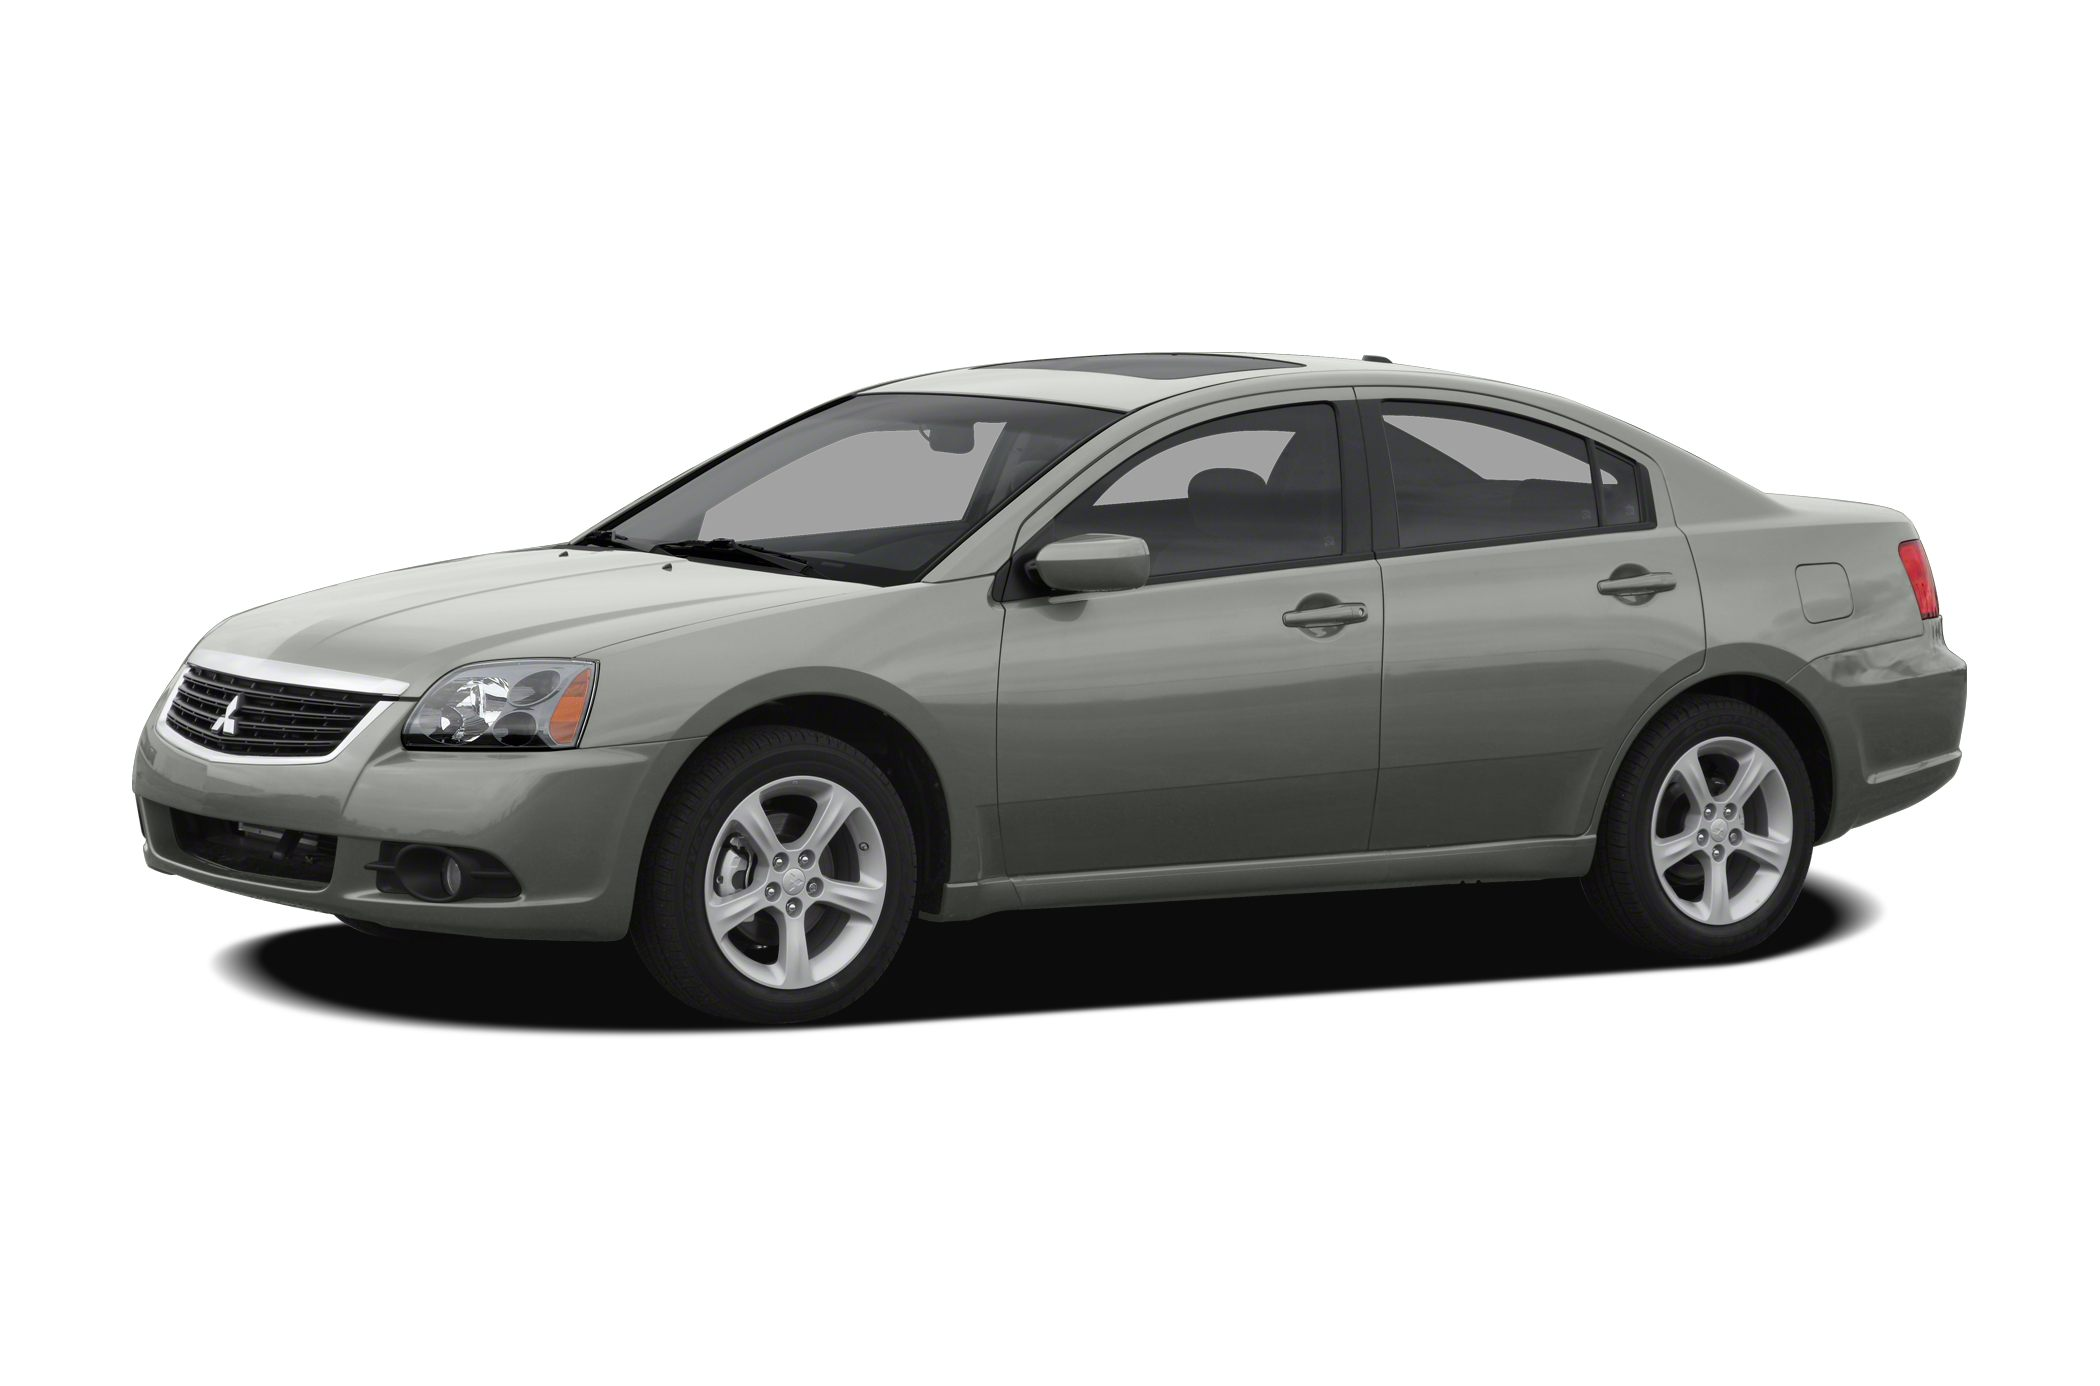 2012 Mitsubishi Galant ES Sedan for sale in Clearwater for $0 with 58,729 miles